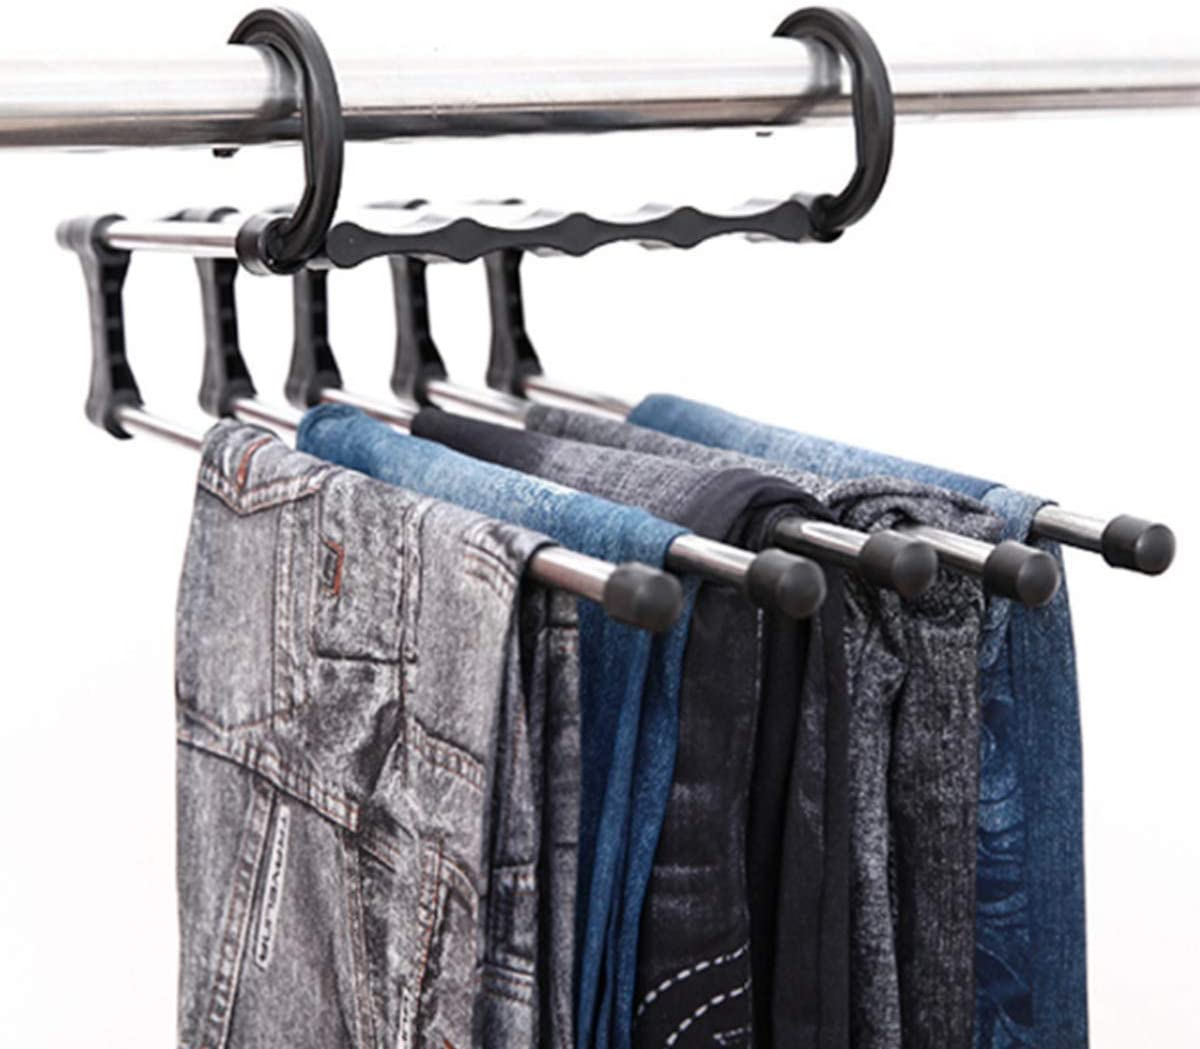 top-jjxkj Pants Hangers,Multi-Function Folding Stainless Steel Pants Hanger Retractable Space Saving Trouser Storage Rack Clothes Hanging Organizer Rack